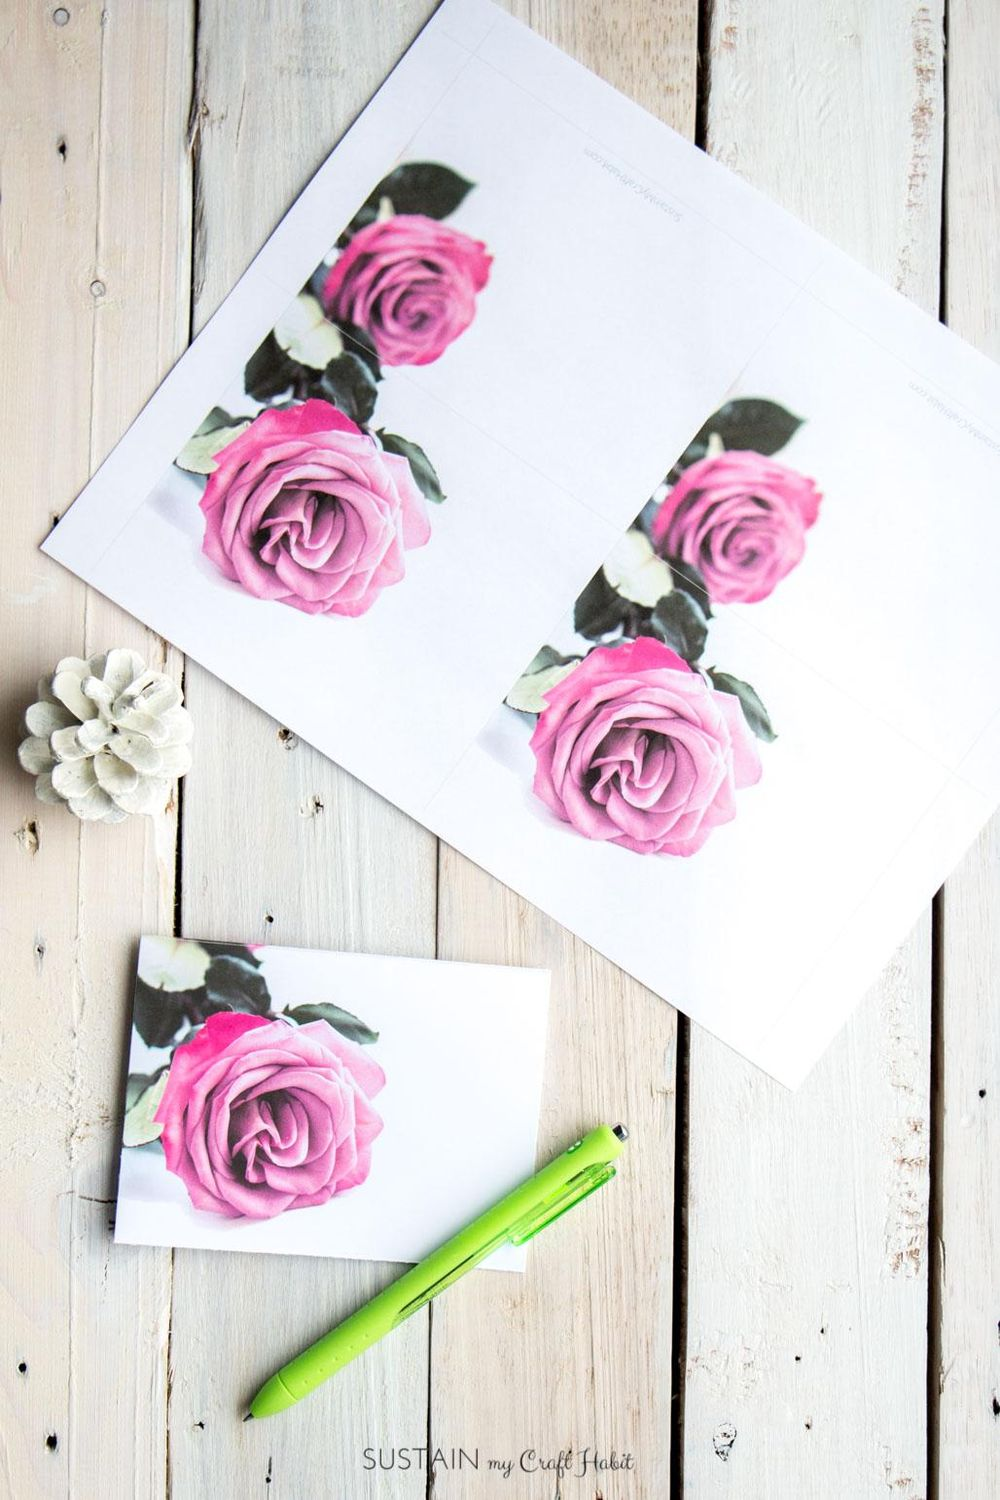 A New Greeting Card Template for Valentines: February Rose! - image 1 - student project